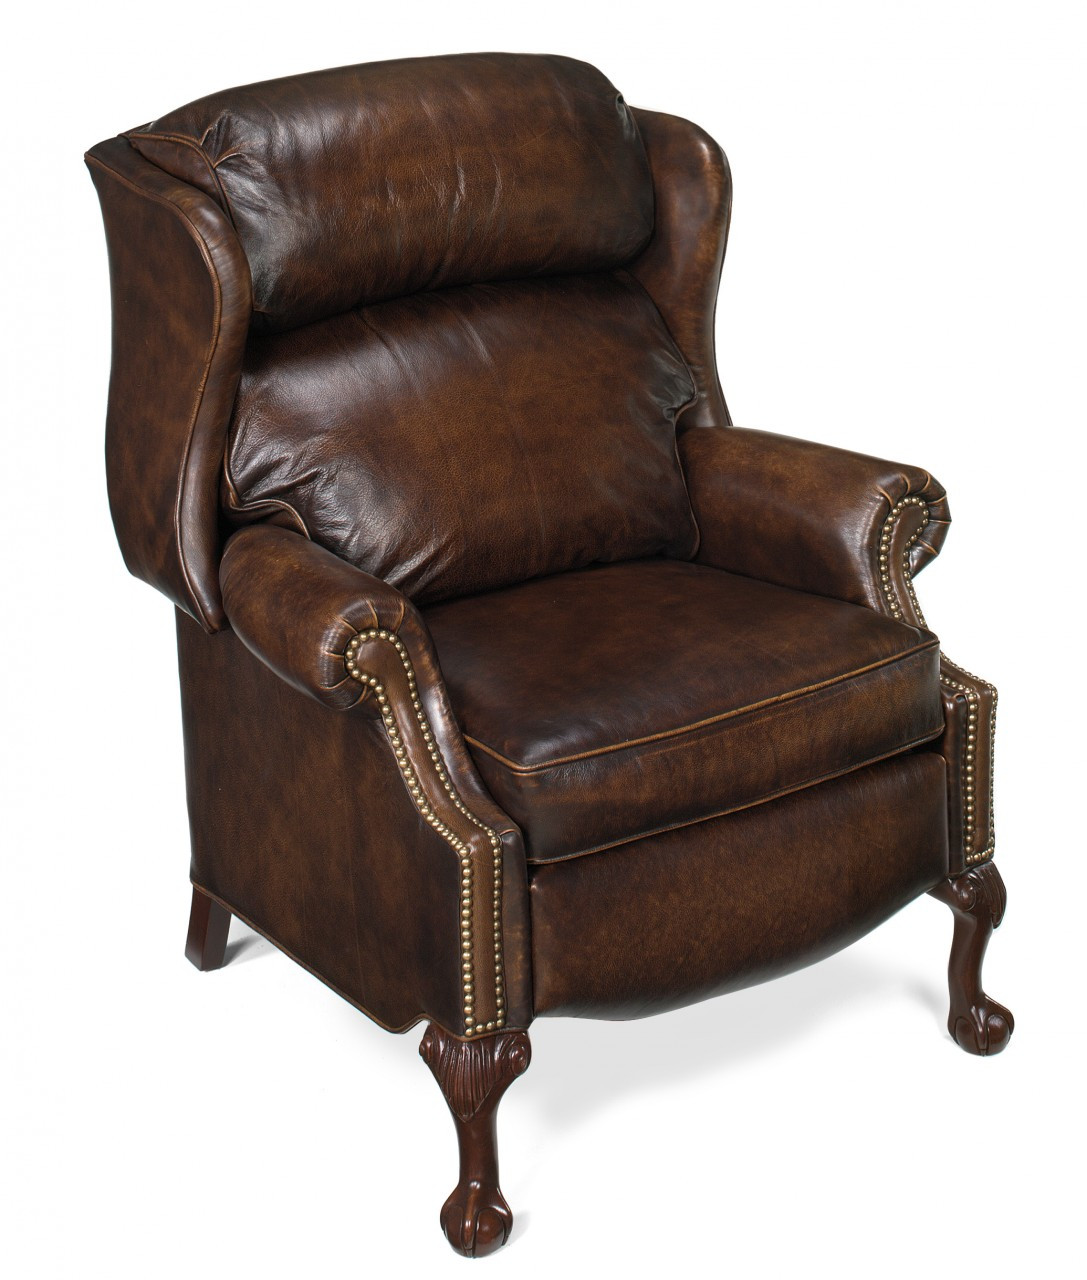 Swell Bradington Young 4115 Ball Claw Recliner 3 Color Special Gmtry Best Dining Table And Chair Ideas Images Gmtryco